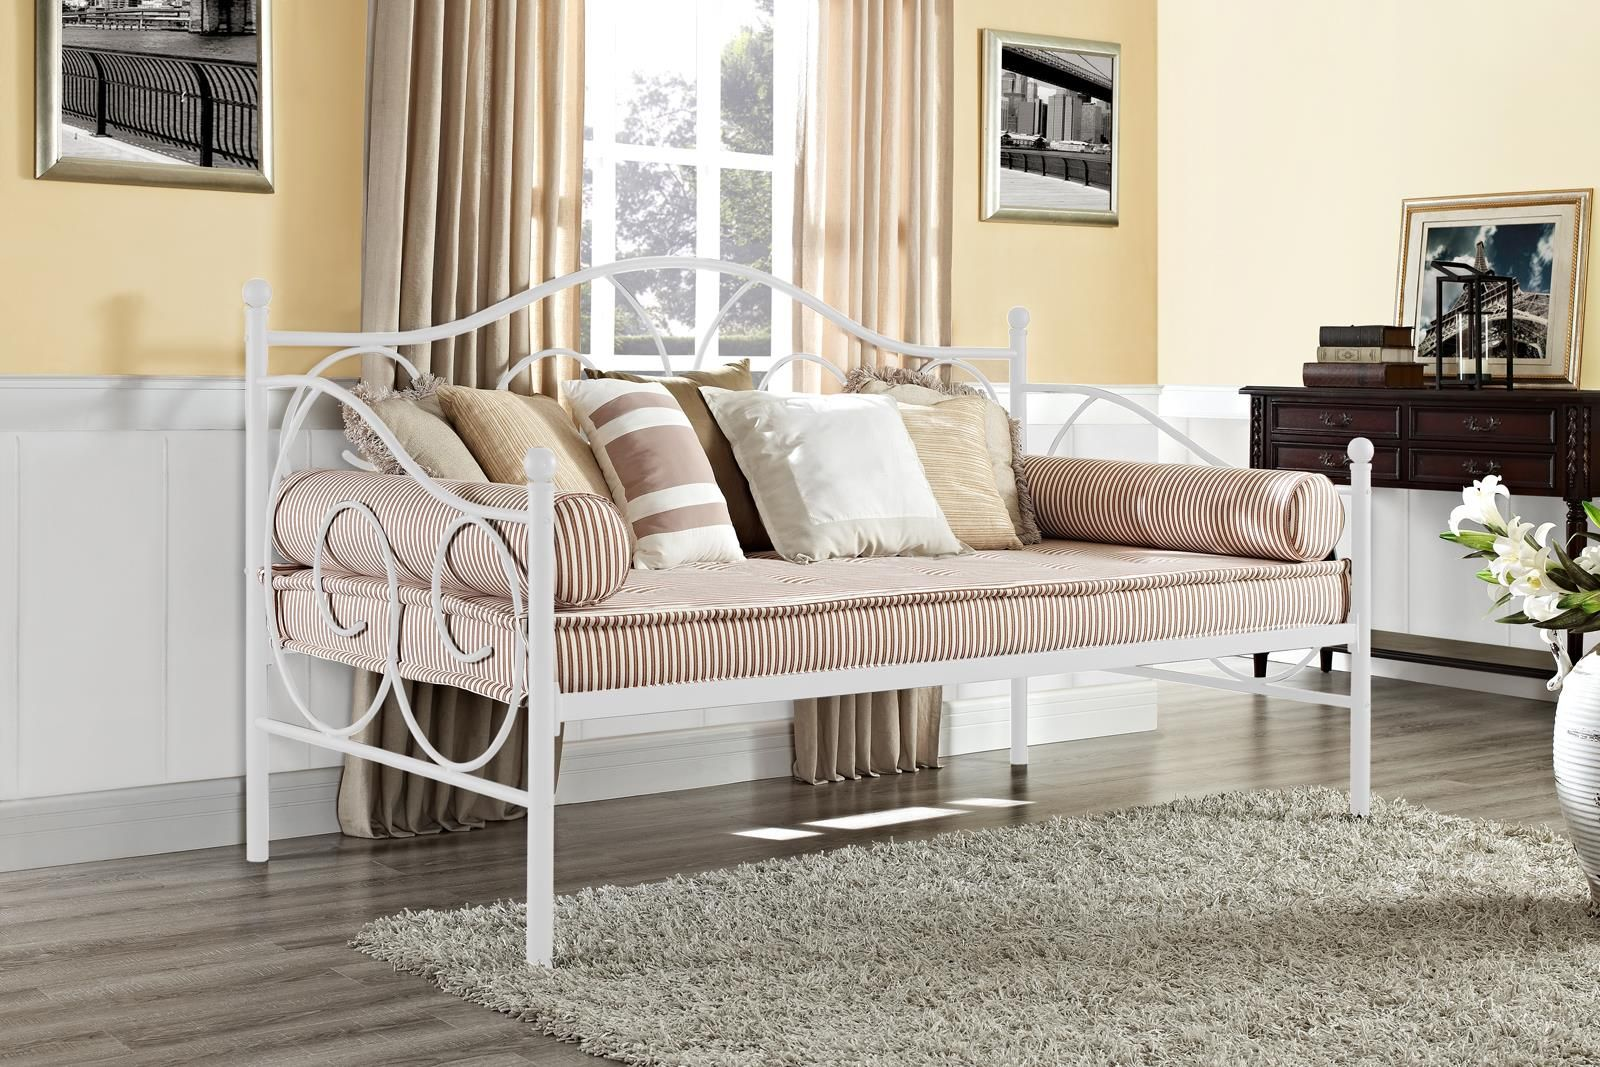 Home Metal daybed, Contemporary living room furniture